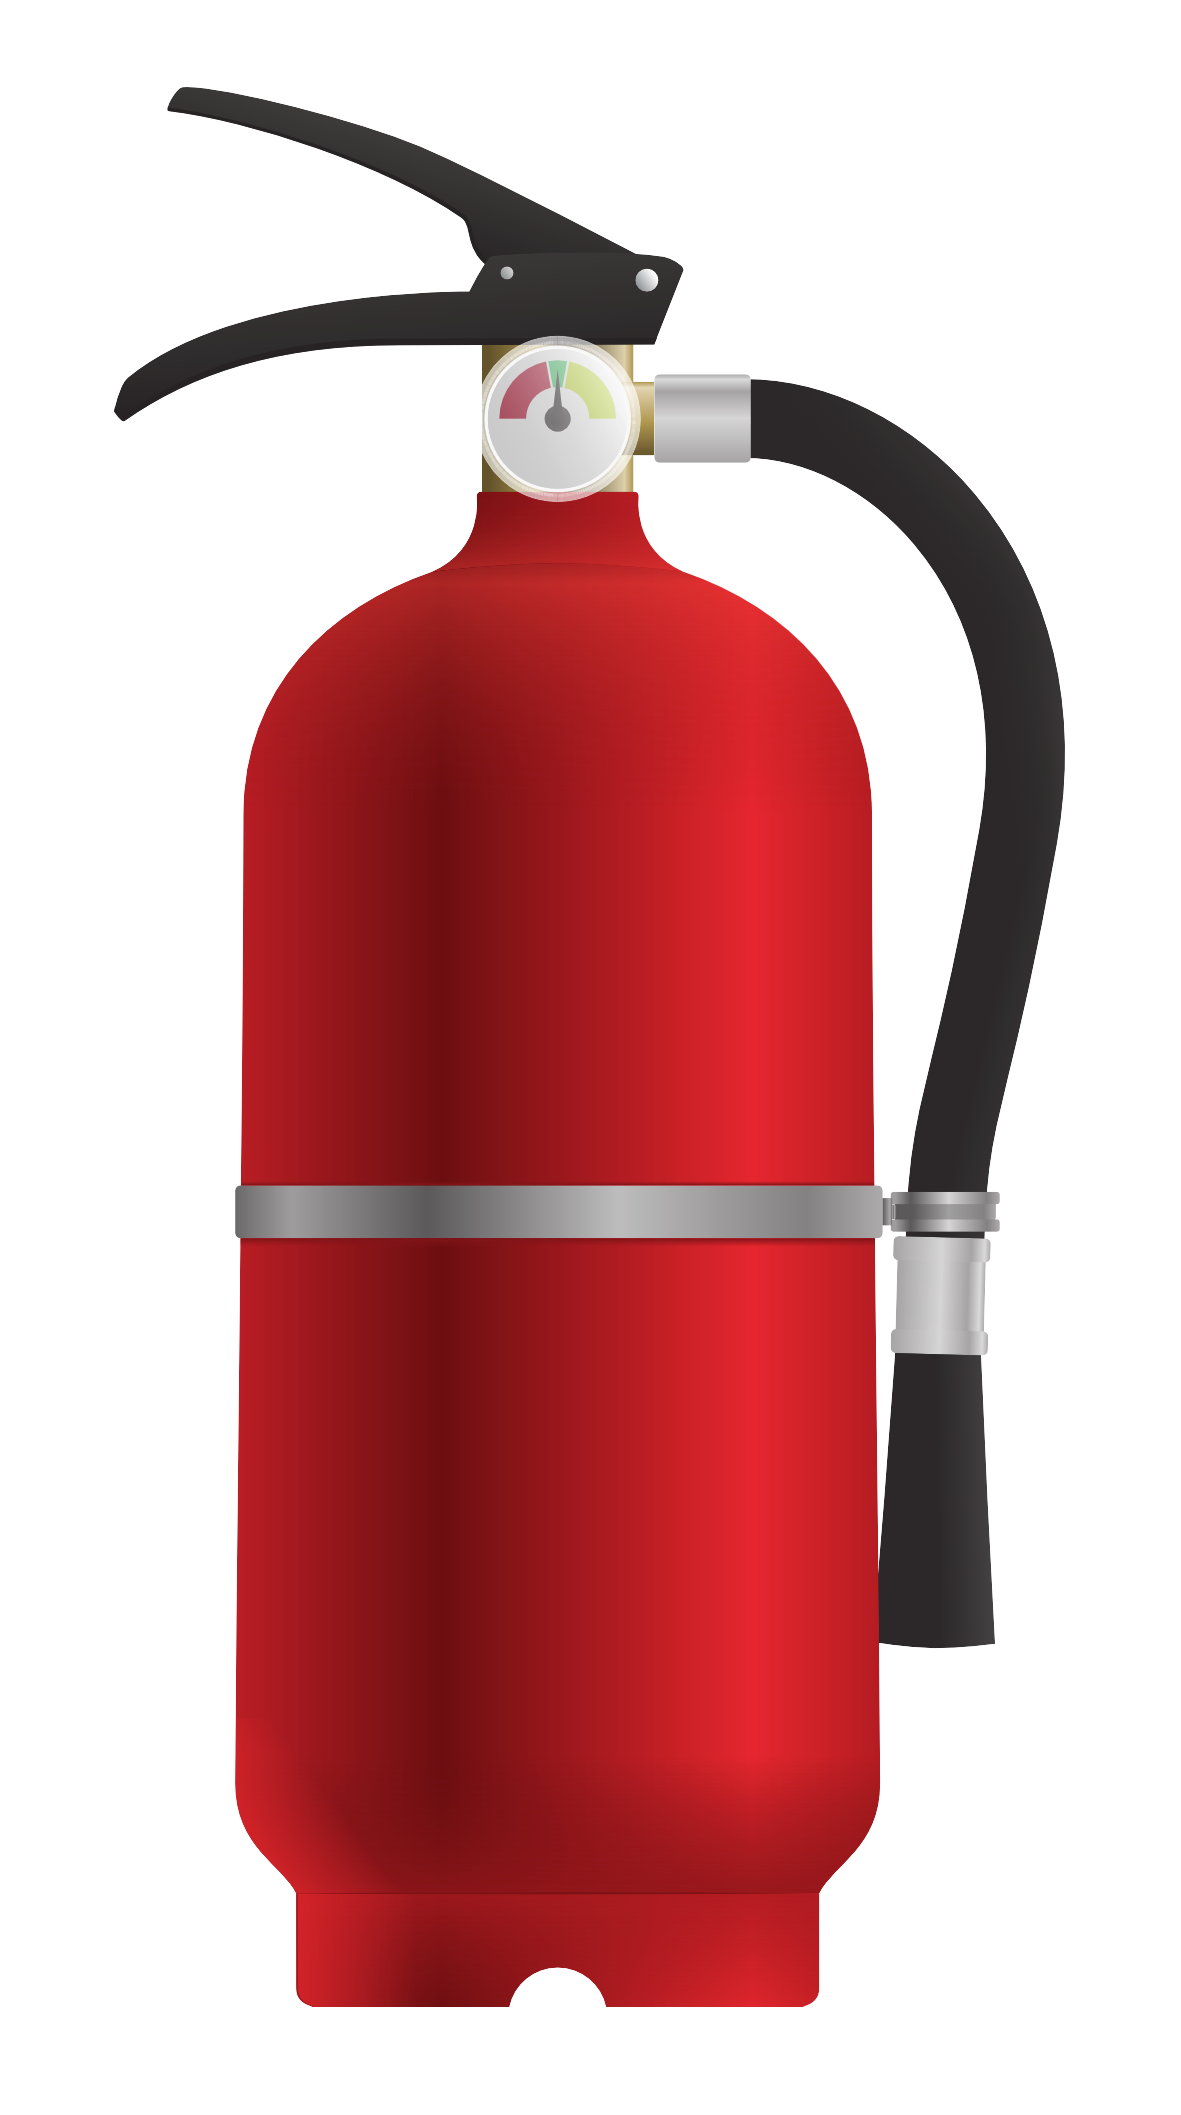 freeuse download Png image purepng free. Extinguisher clipart.